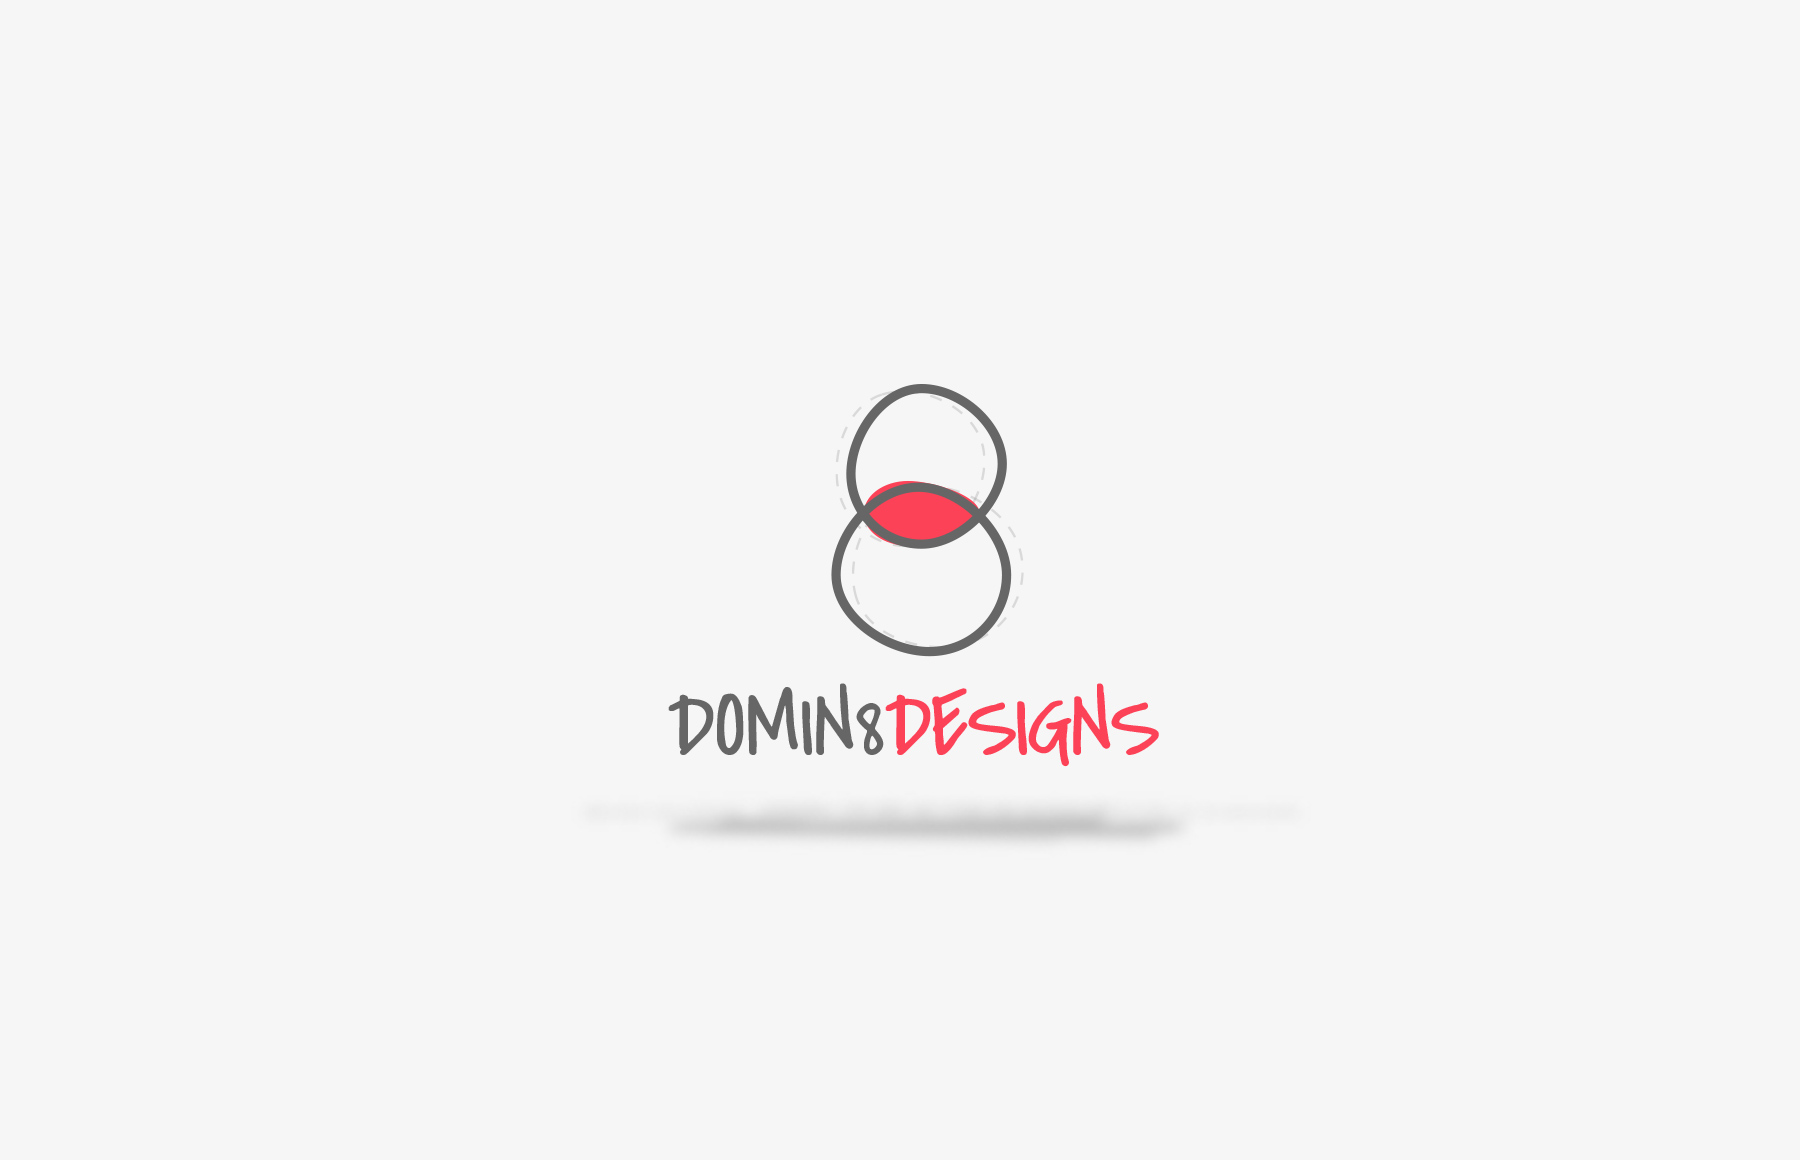 The current Domin8 Designs logo today.